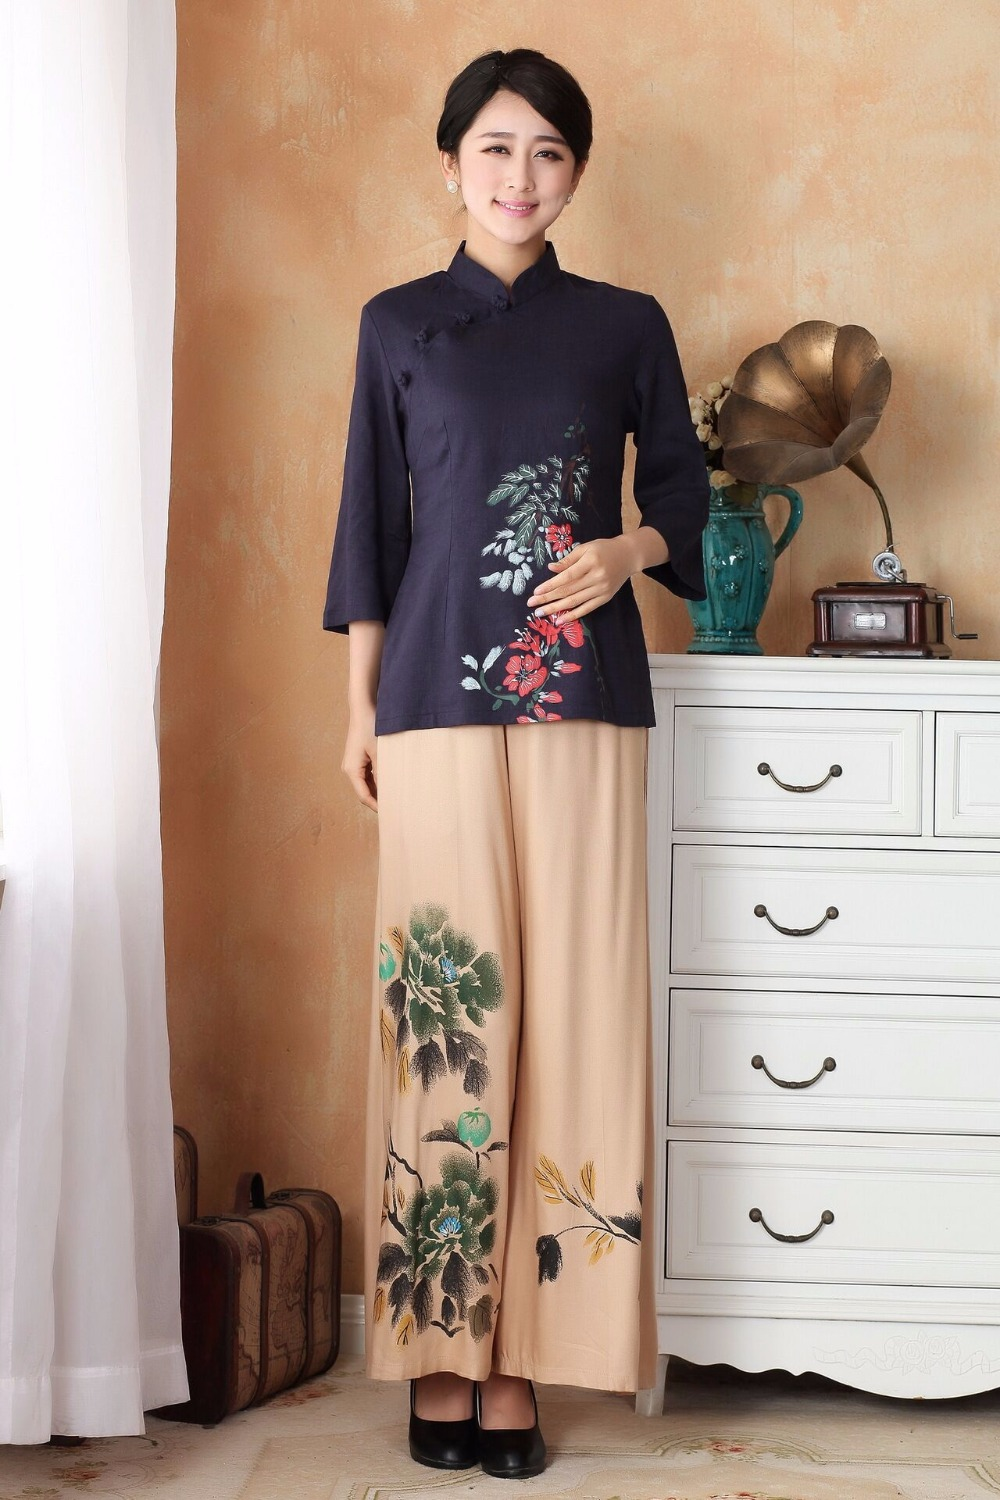 New Arrival Chinese Women's Shirt Pants Sets Cotton Linen Tang Suit Clothing Size S M L XL XXL XXXL 2395-2(China (Mainland))